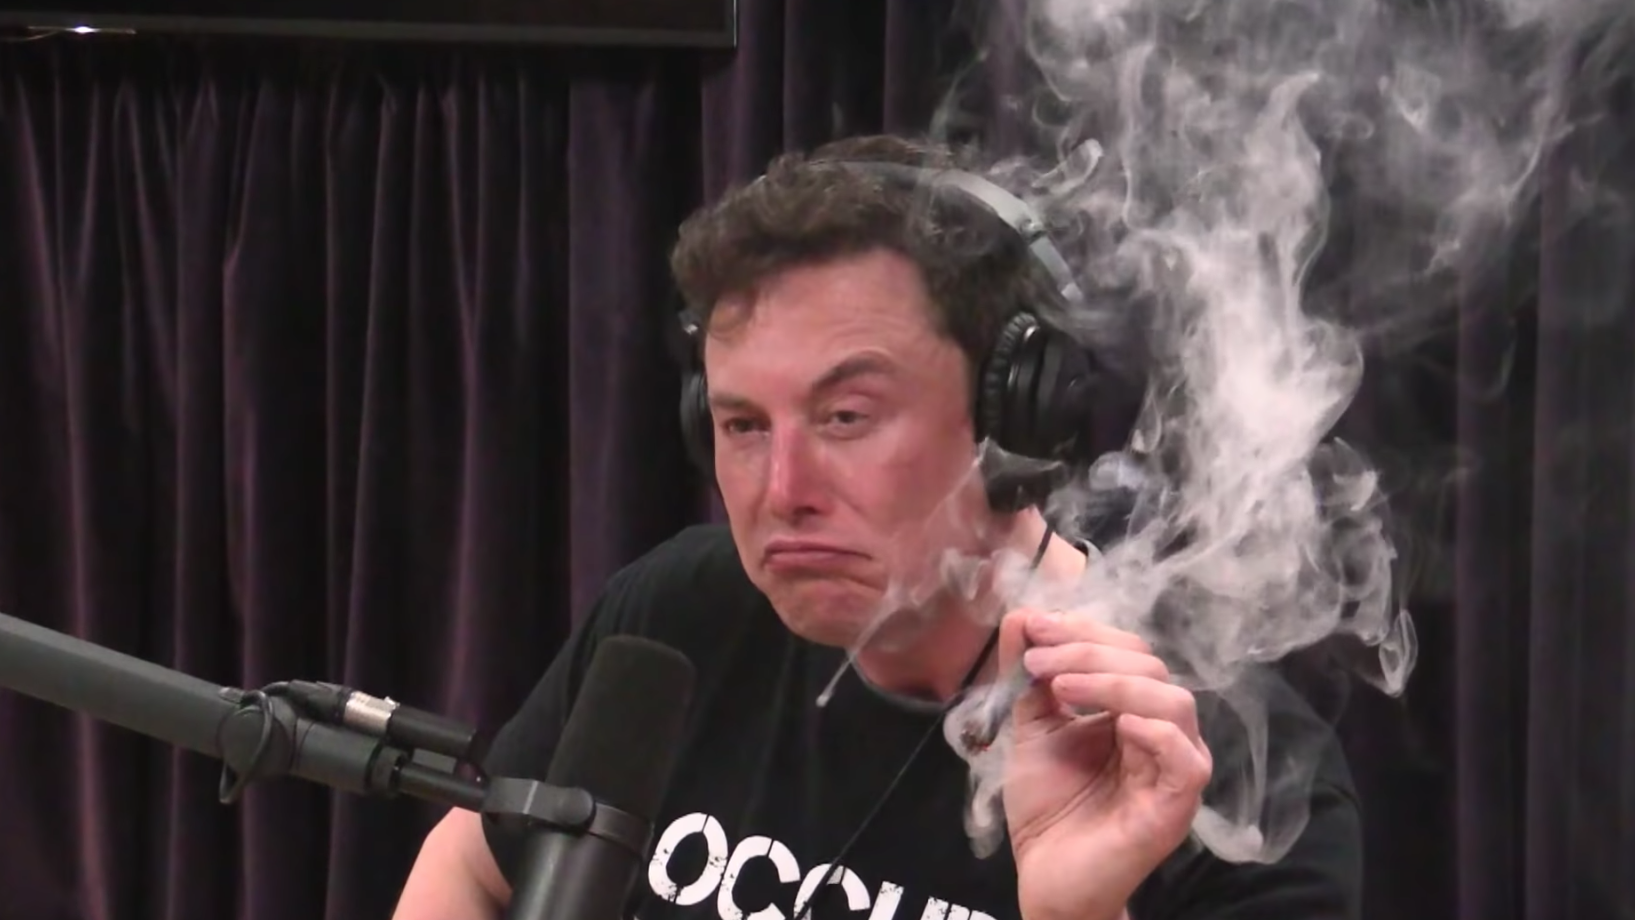 Elon Musk Smoking Joe Rogan's Weed Somehow Ended Up Costing Taxpayers $7.3 Million